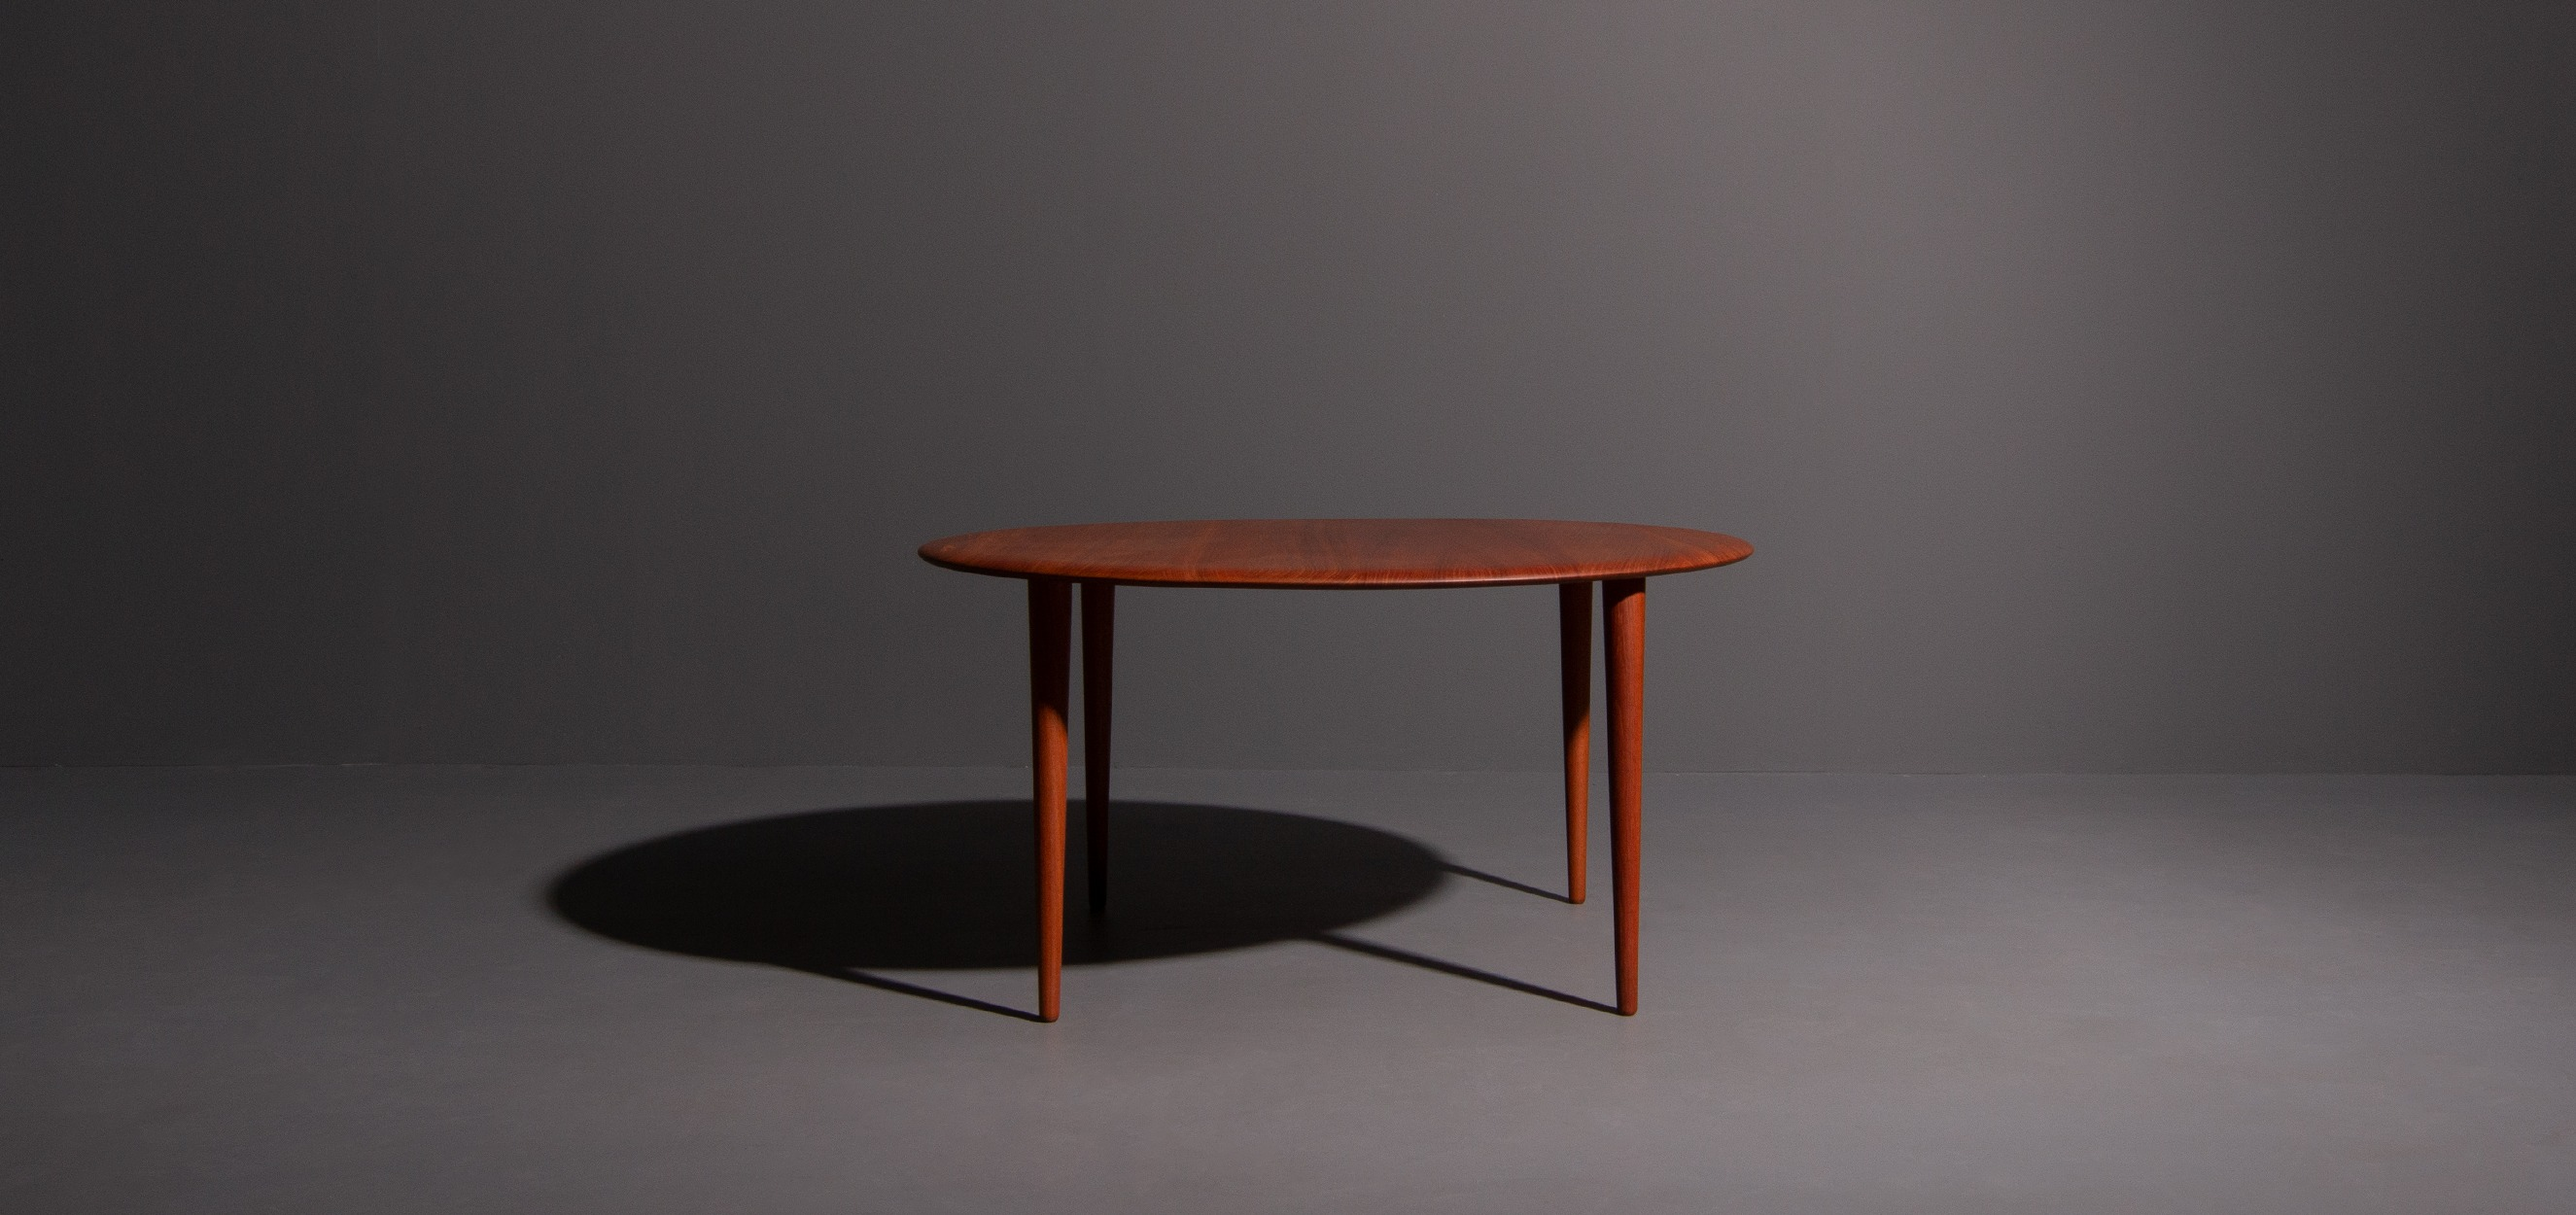 Salontafel Design On Stock.Vintage Design Coffee Table Designed By Peter Hvidt Produced By